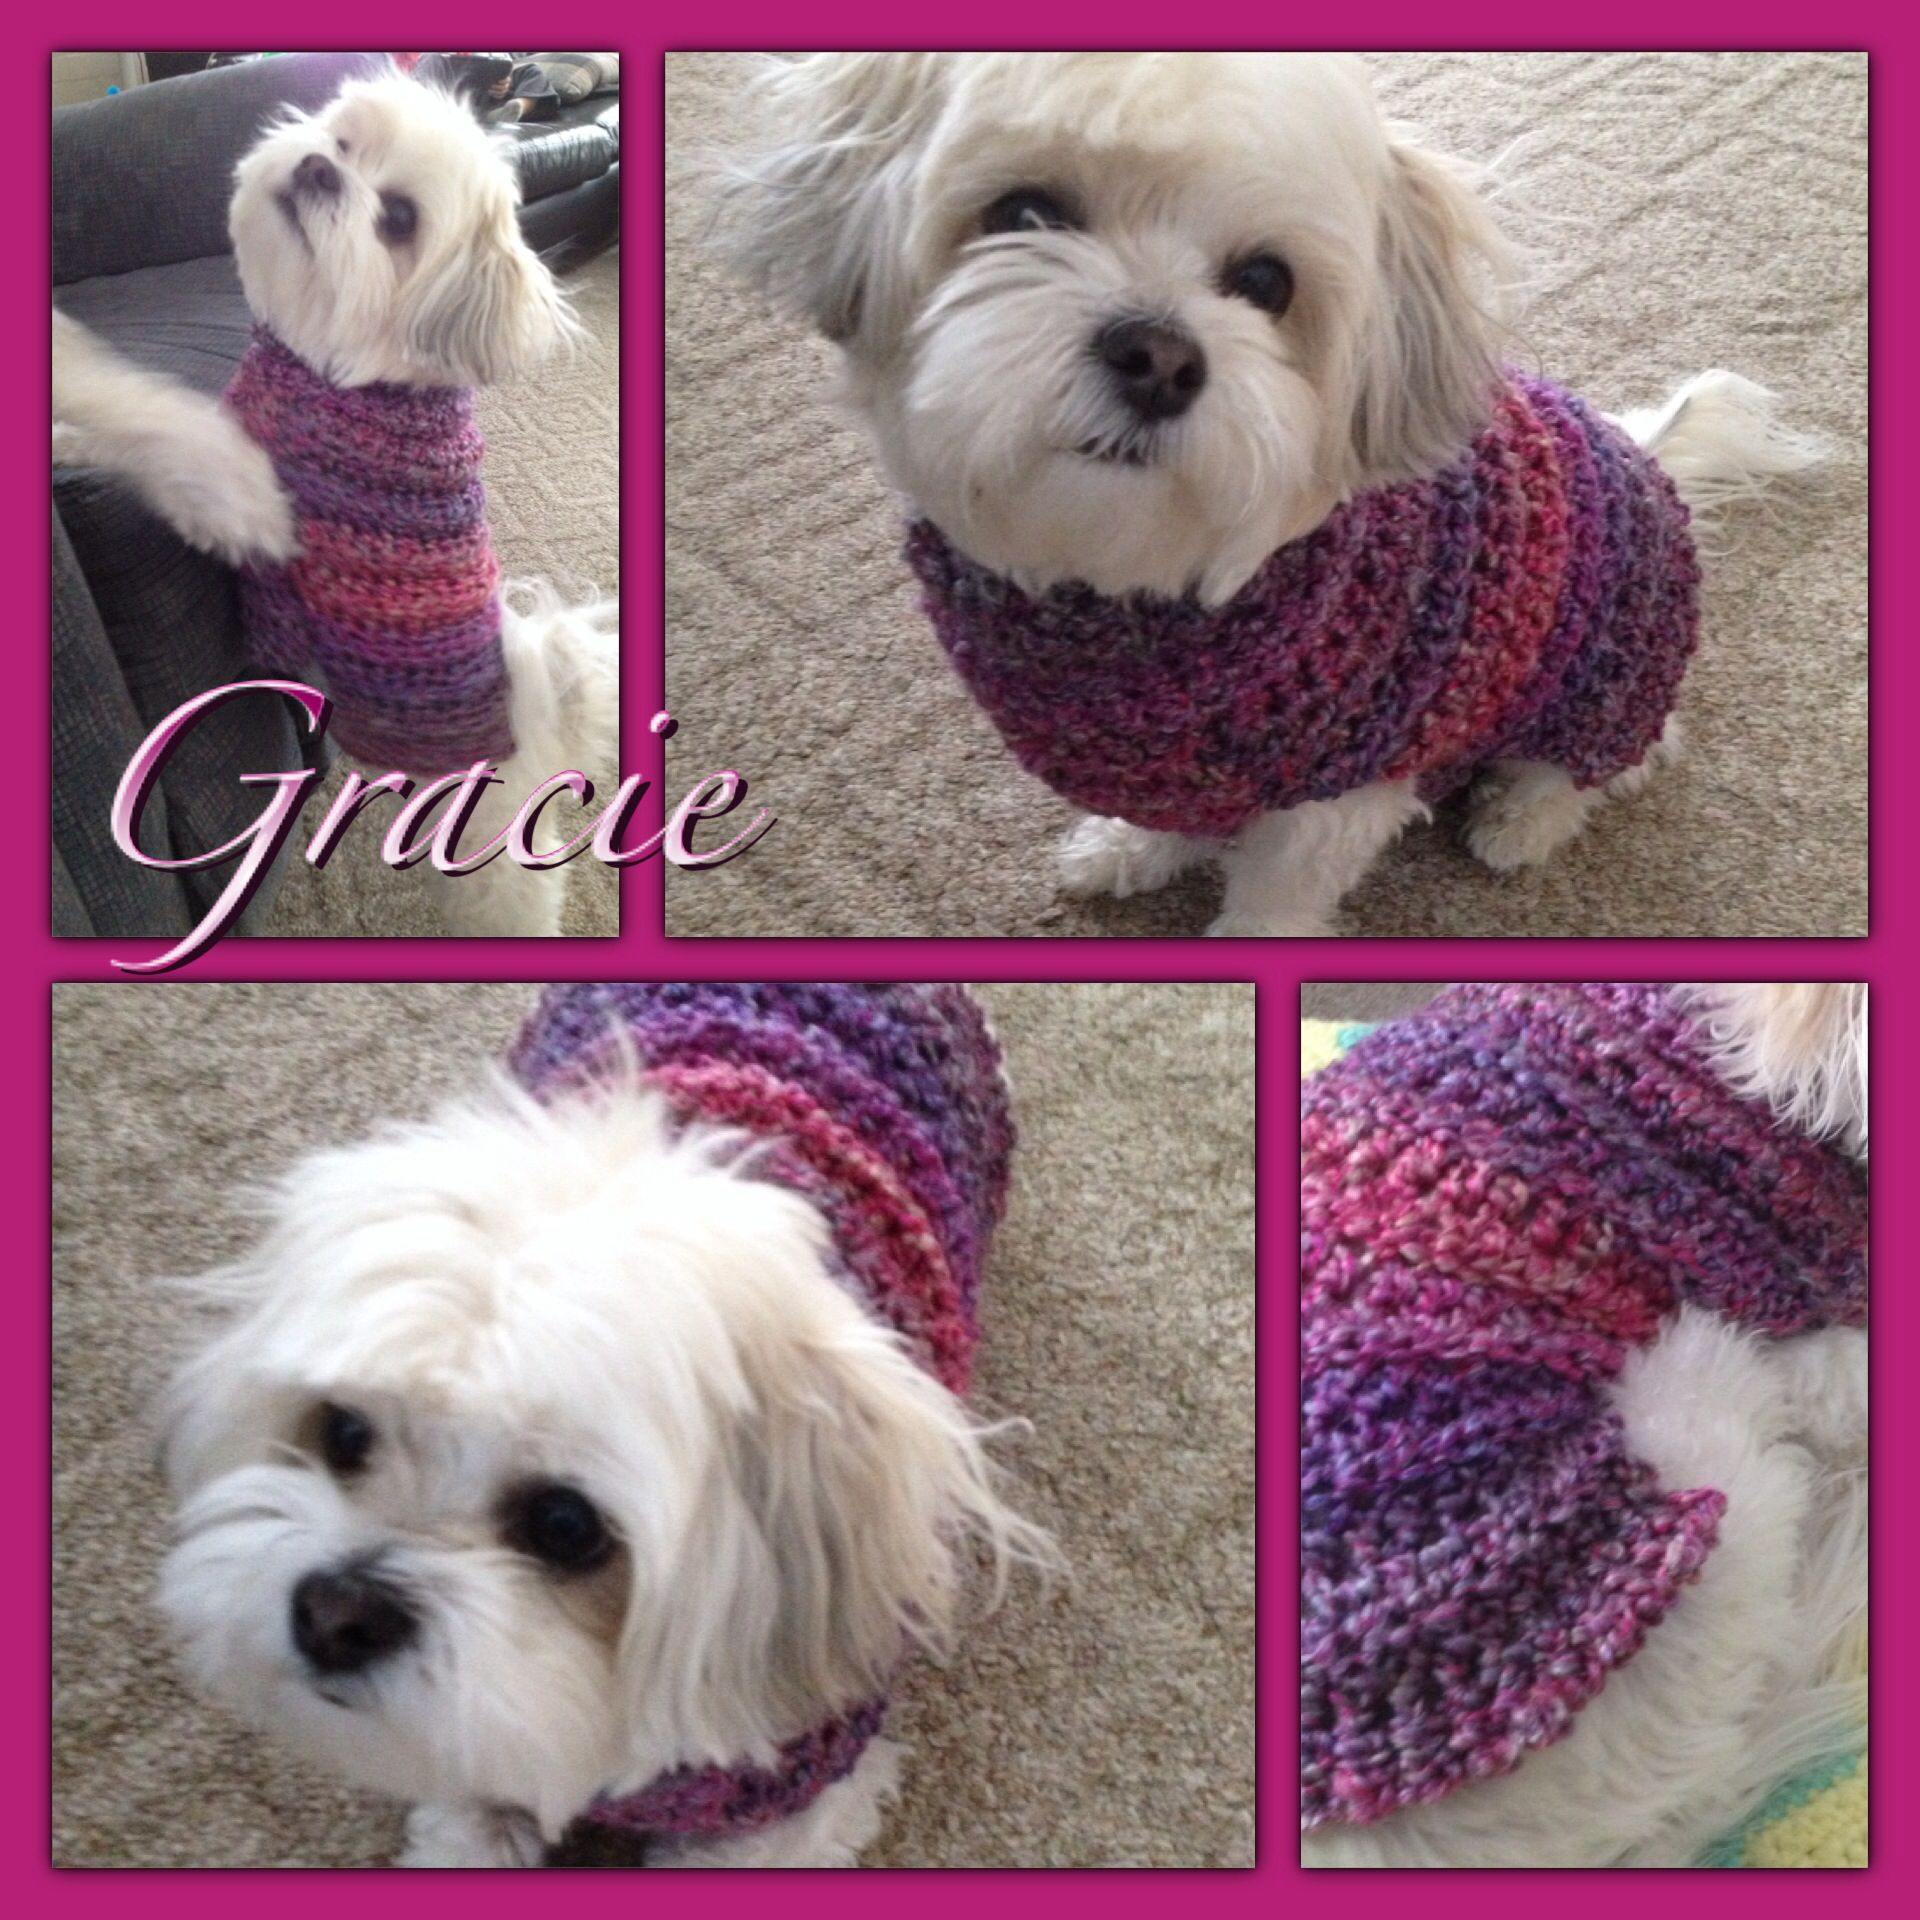 Crocheting Dog Sweater : Crochet dog sweater Crocheting and Knitting Pinterest